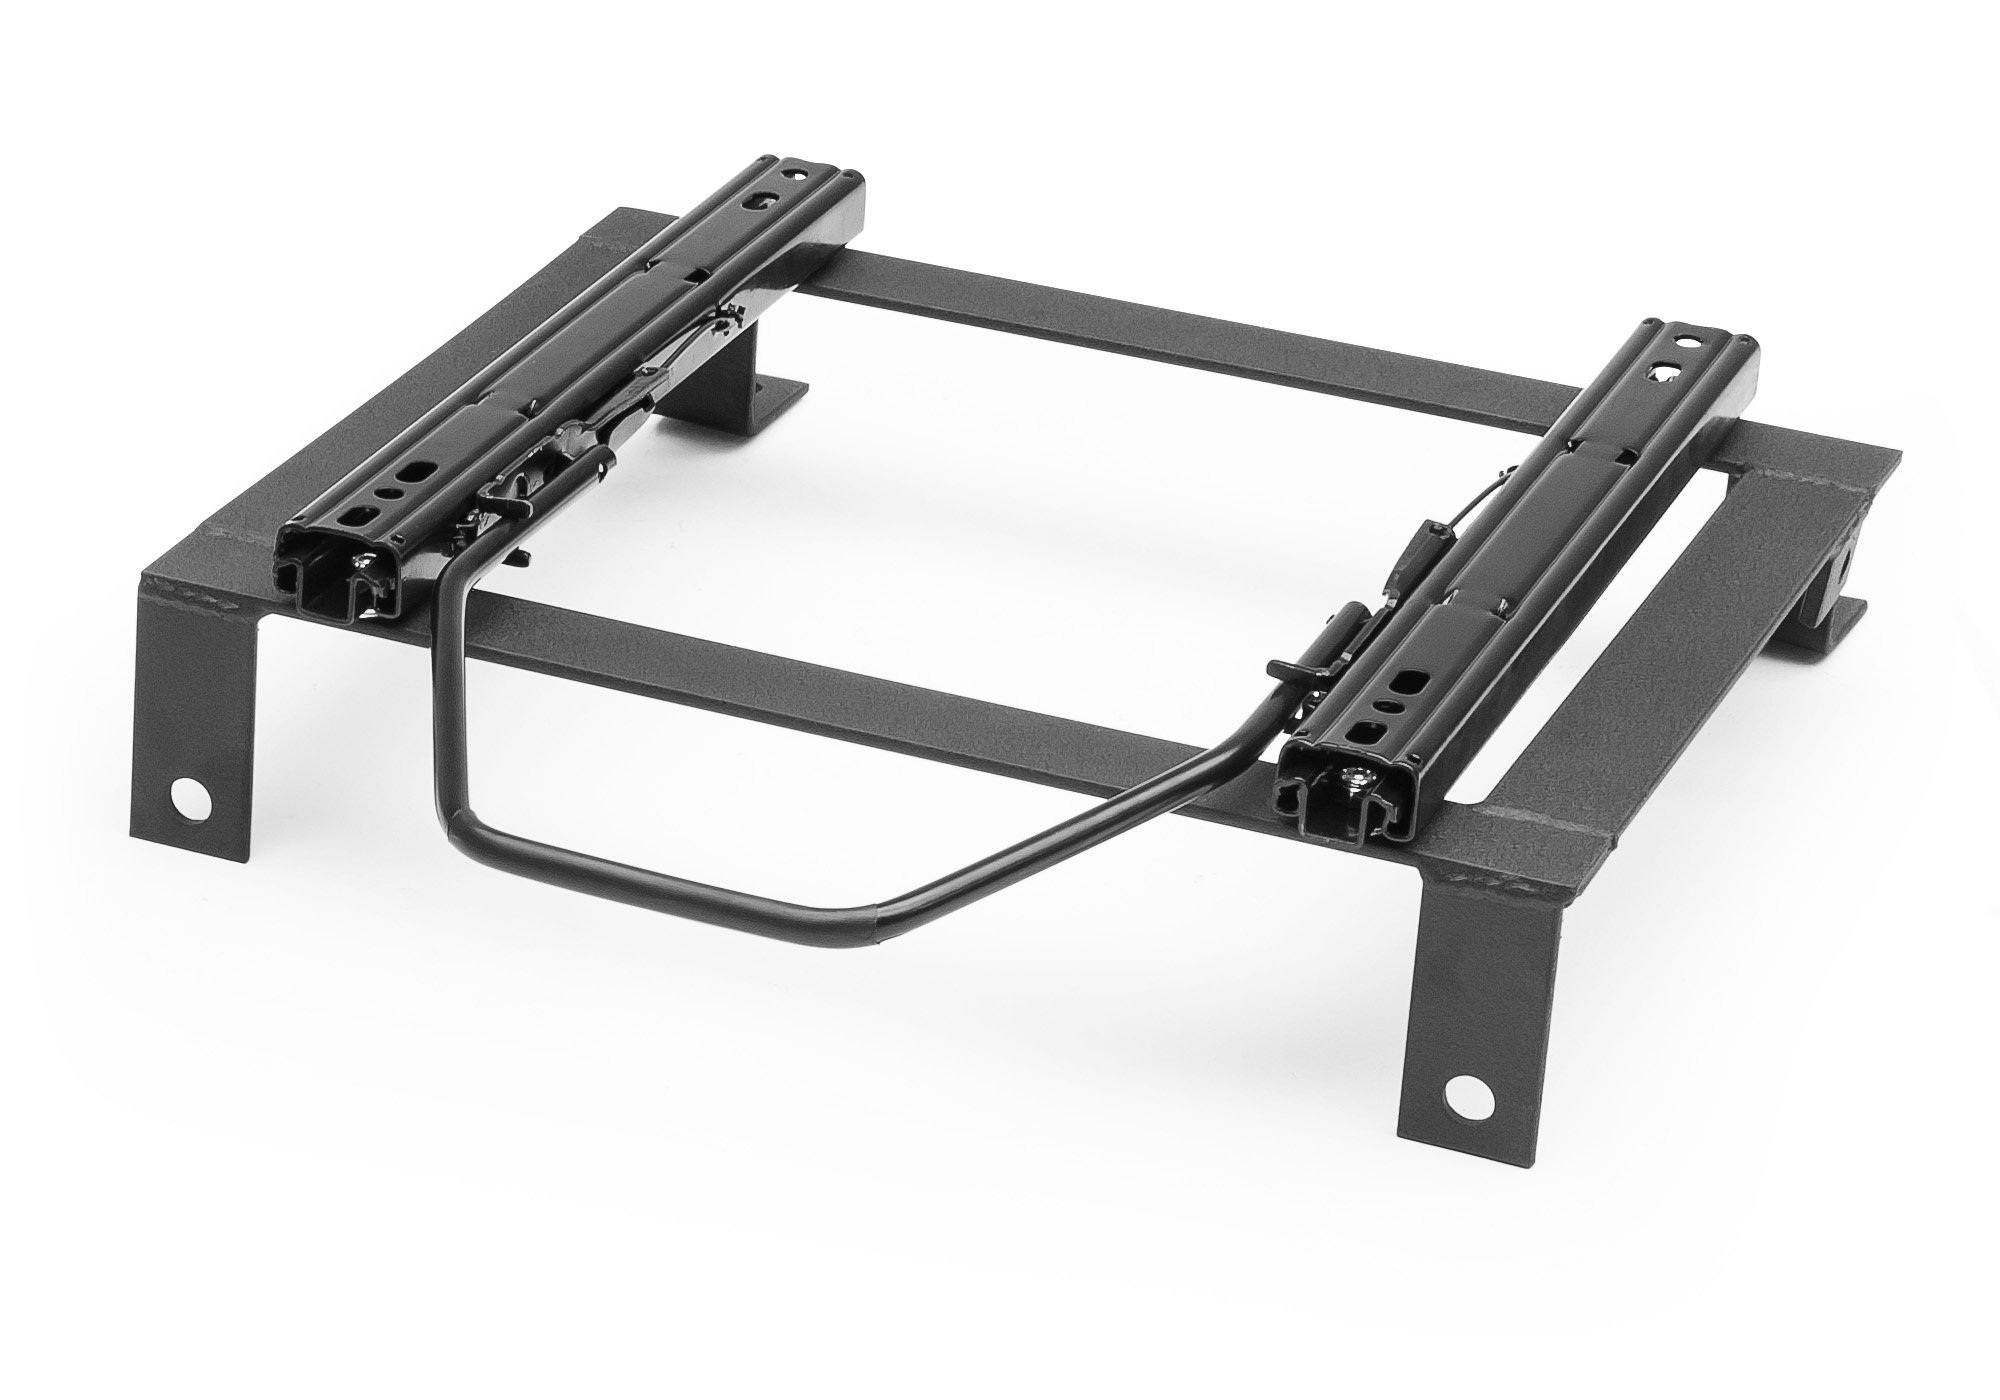 """Image of """"Corbeau 1"""""""" Tall Universal Seat Bracket With Double Locking Slider, Powder Coat Black - Left Or Right Side"""""""